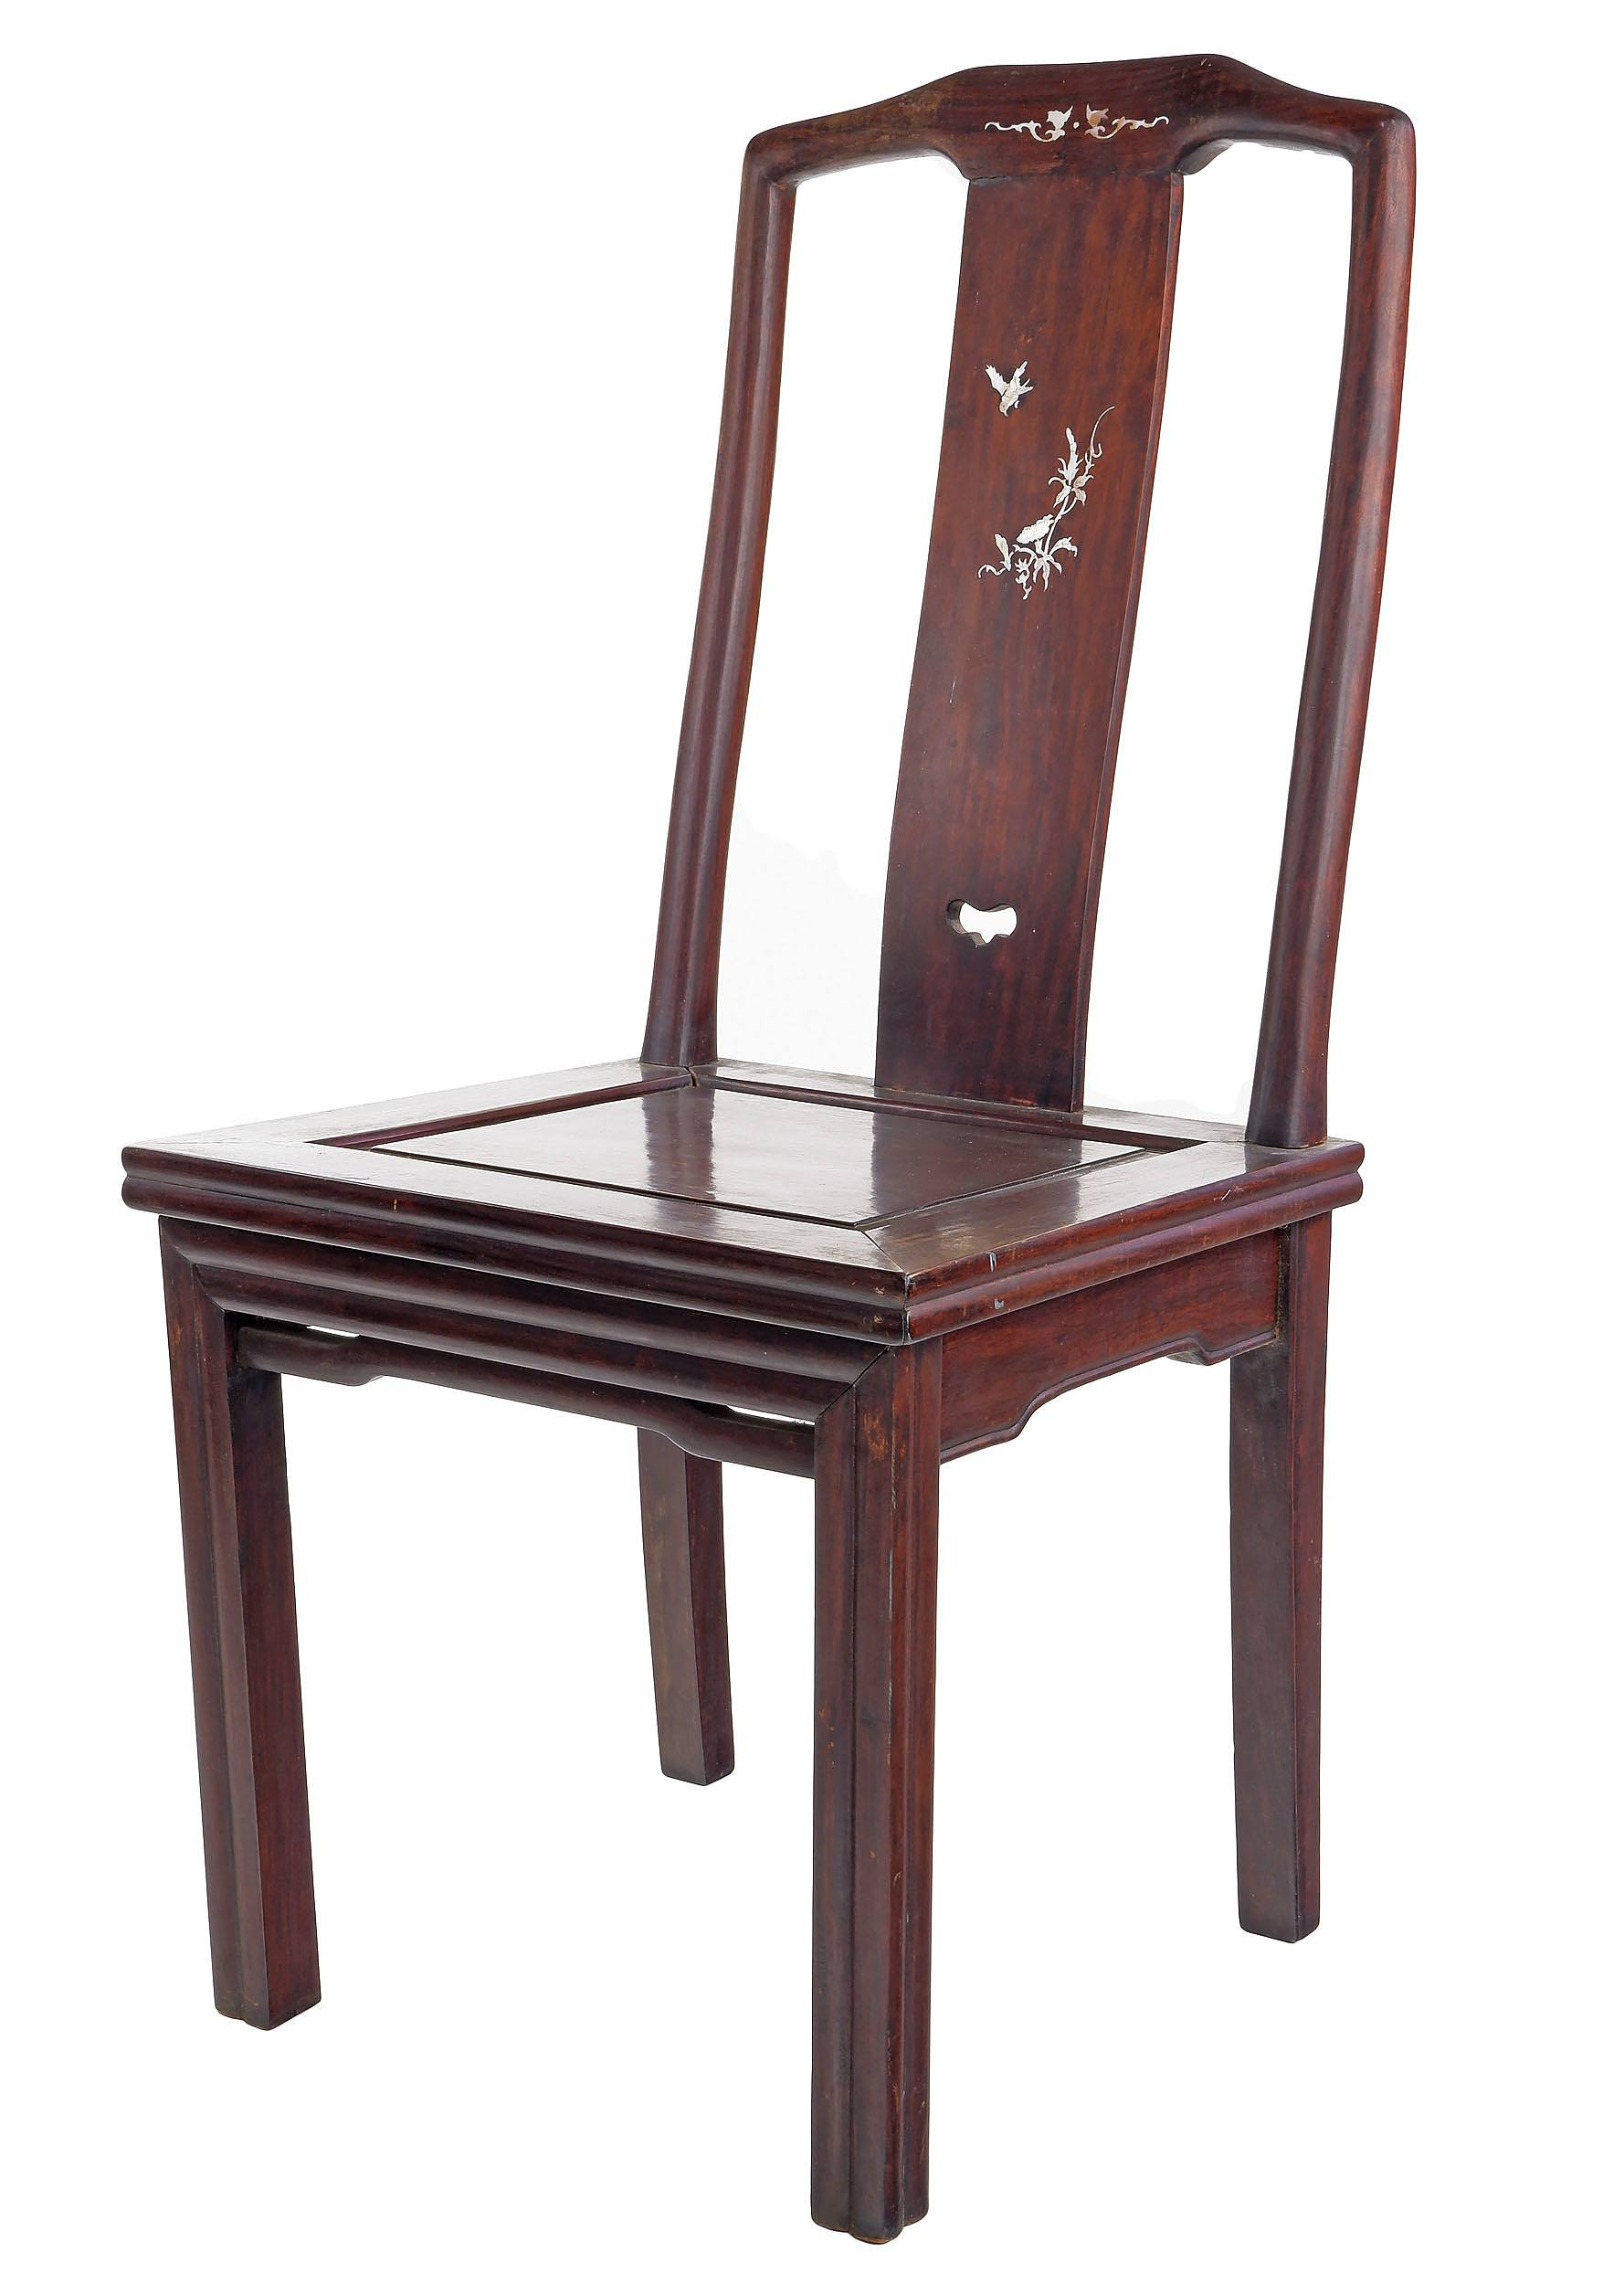 'Antique Chinese Rosewood Chair with Pearl Shell Inlay, Early 20th Century'